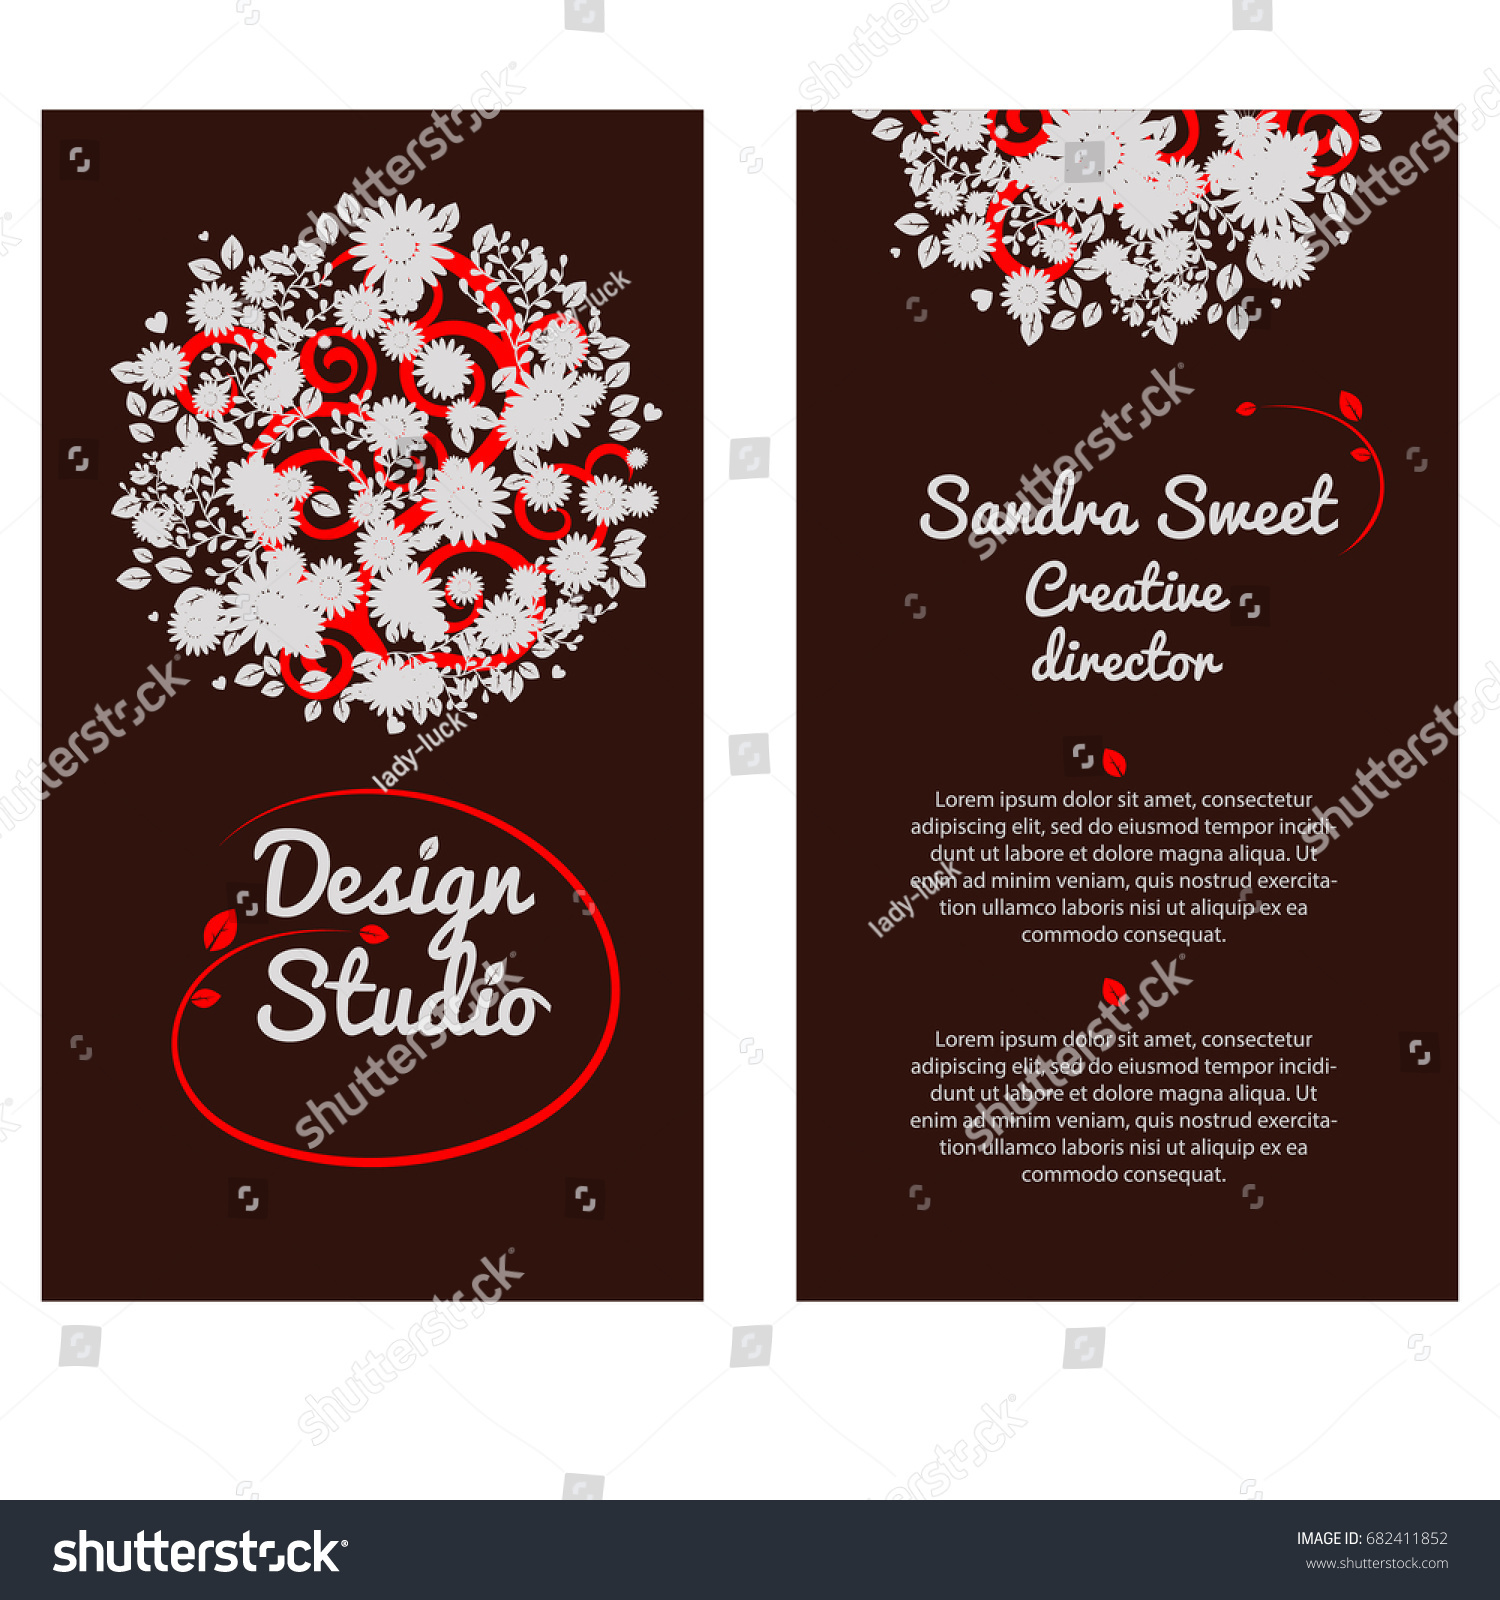 Stylish template modern design abstract creative stock vector stylish template with modern design of abstract creative business card or visiting card decorative element junglespirit Image collections